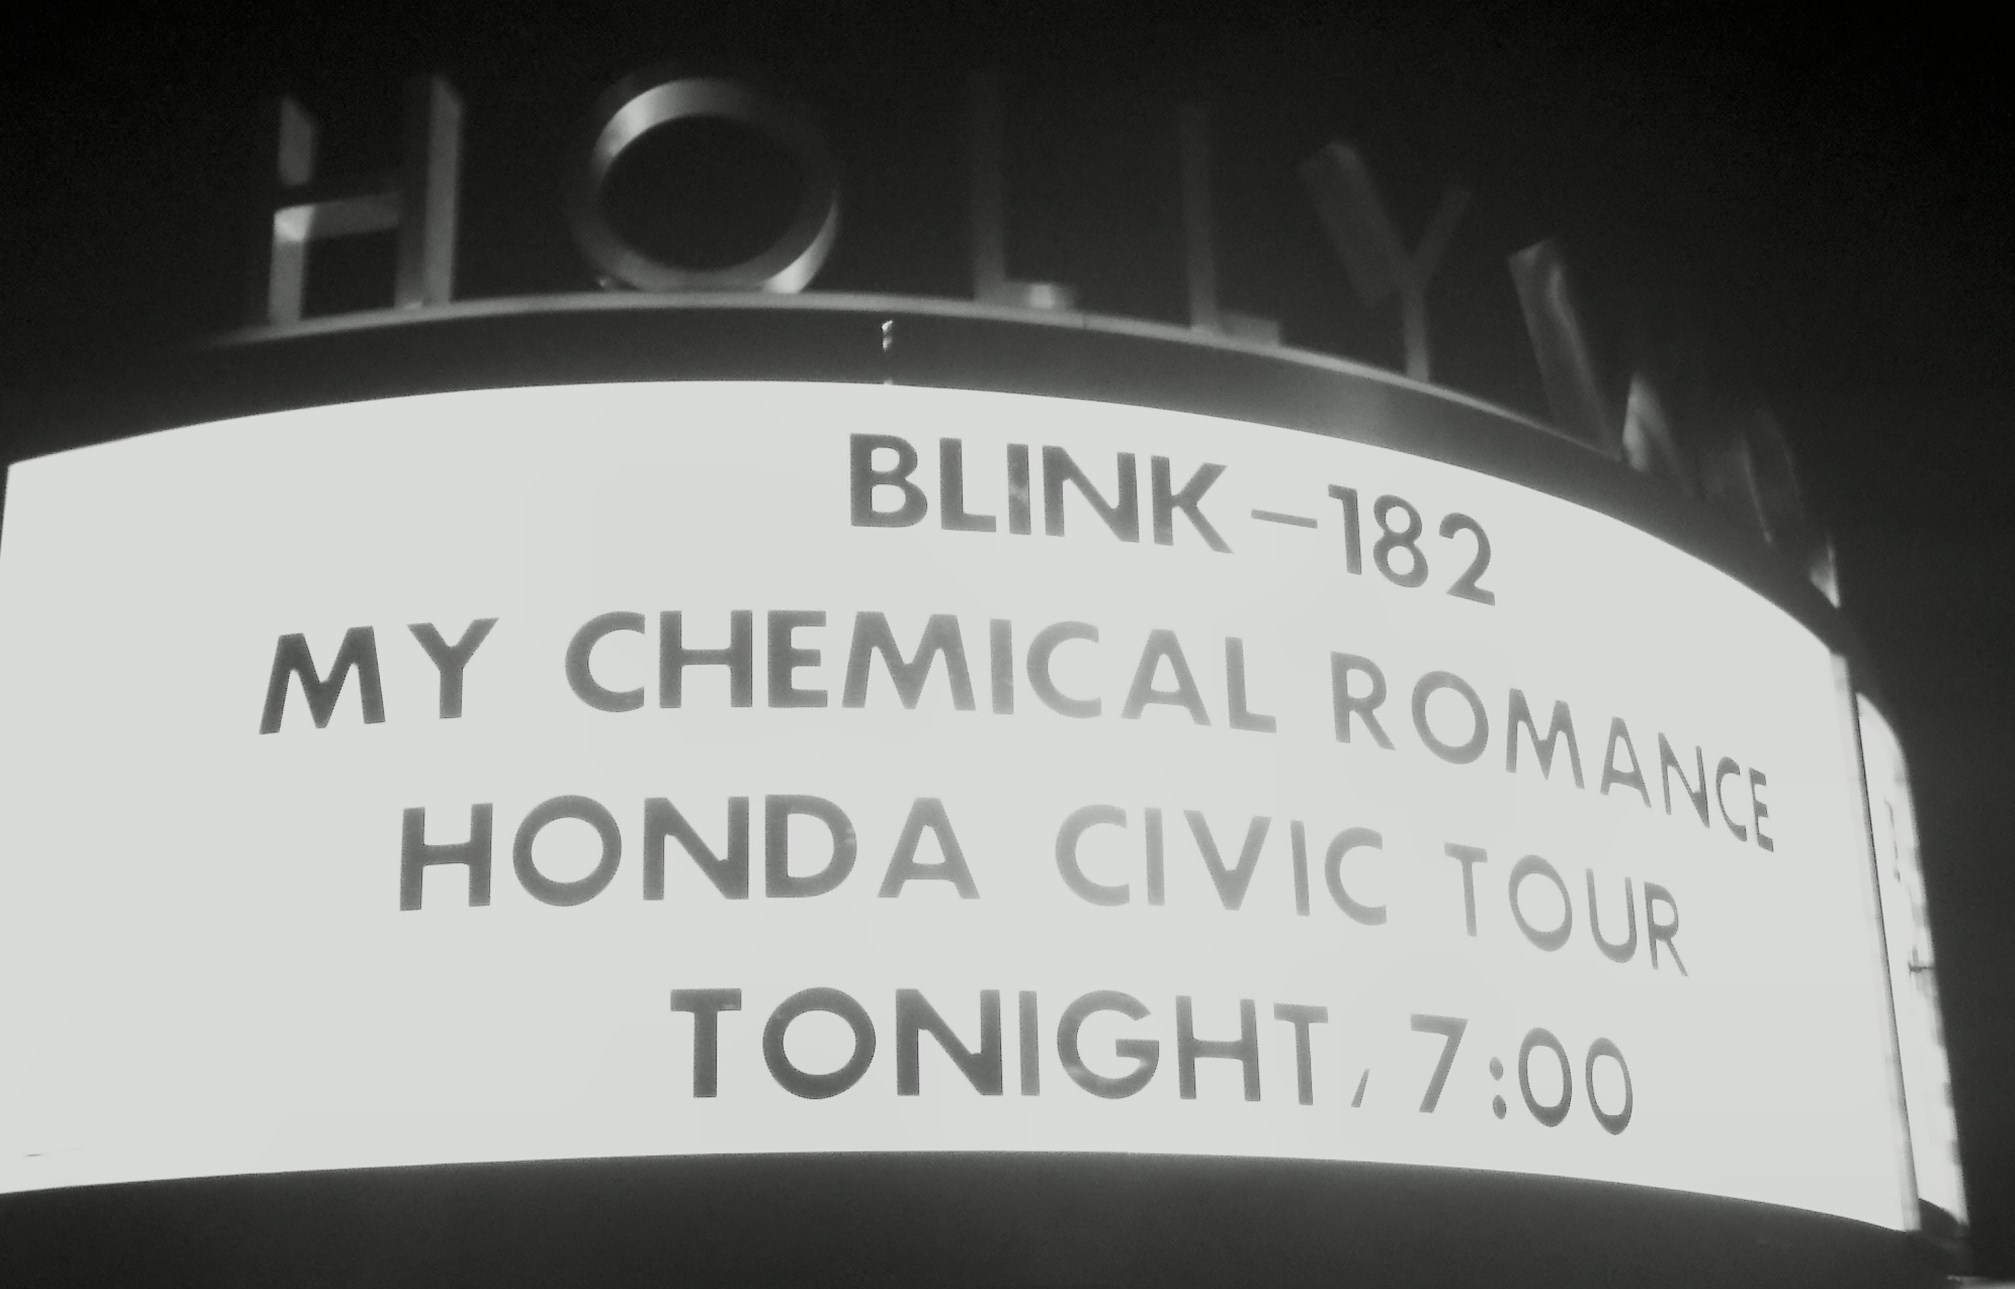 Blink 182 @ The Hollywood Bowl Concert Review